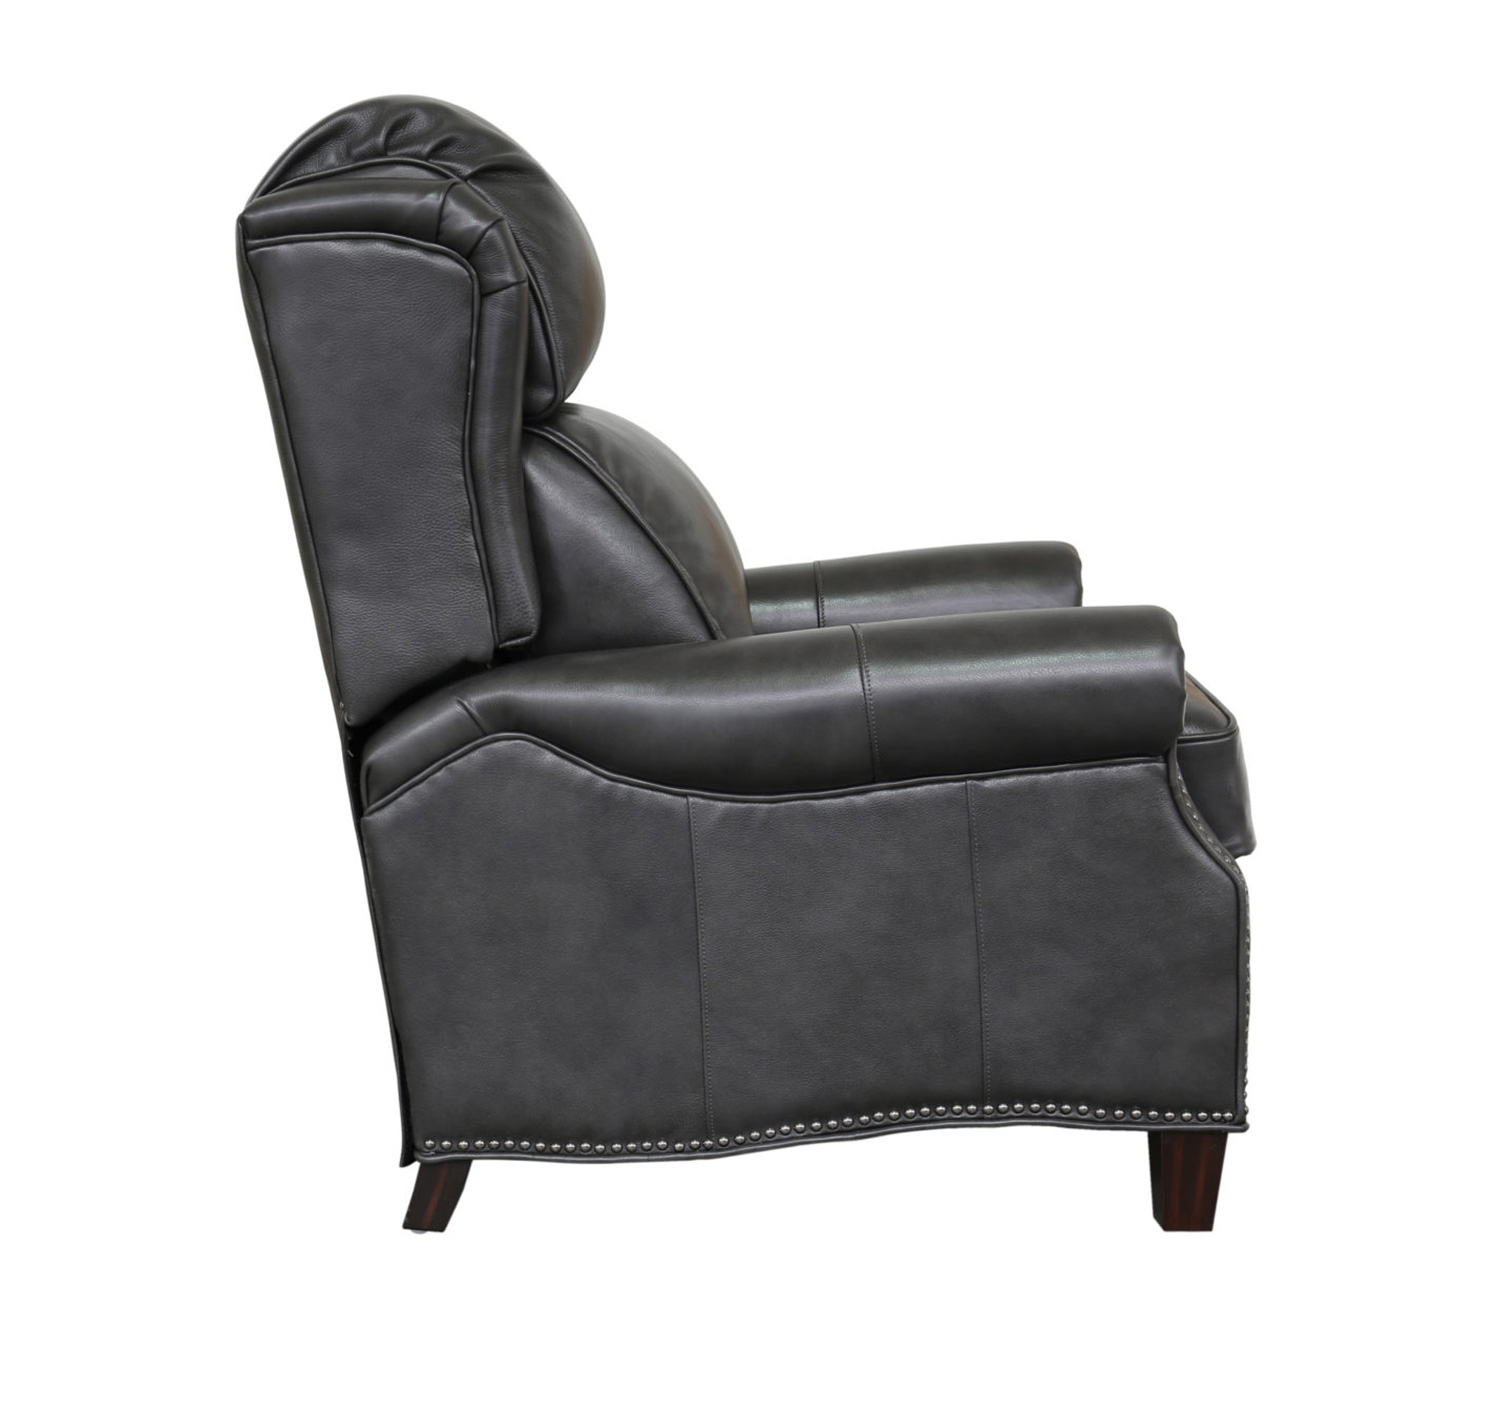 Barcalounger Meade Recliner Chair - Wrenn Gray/all leather